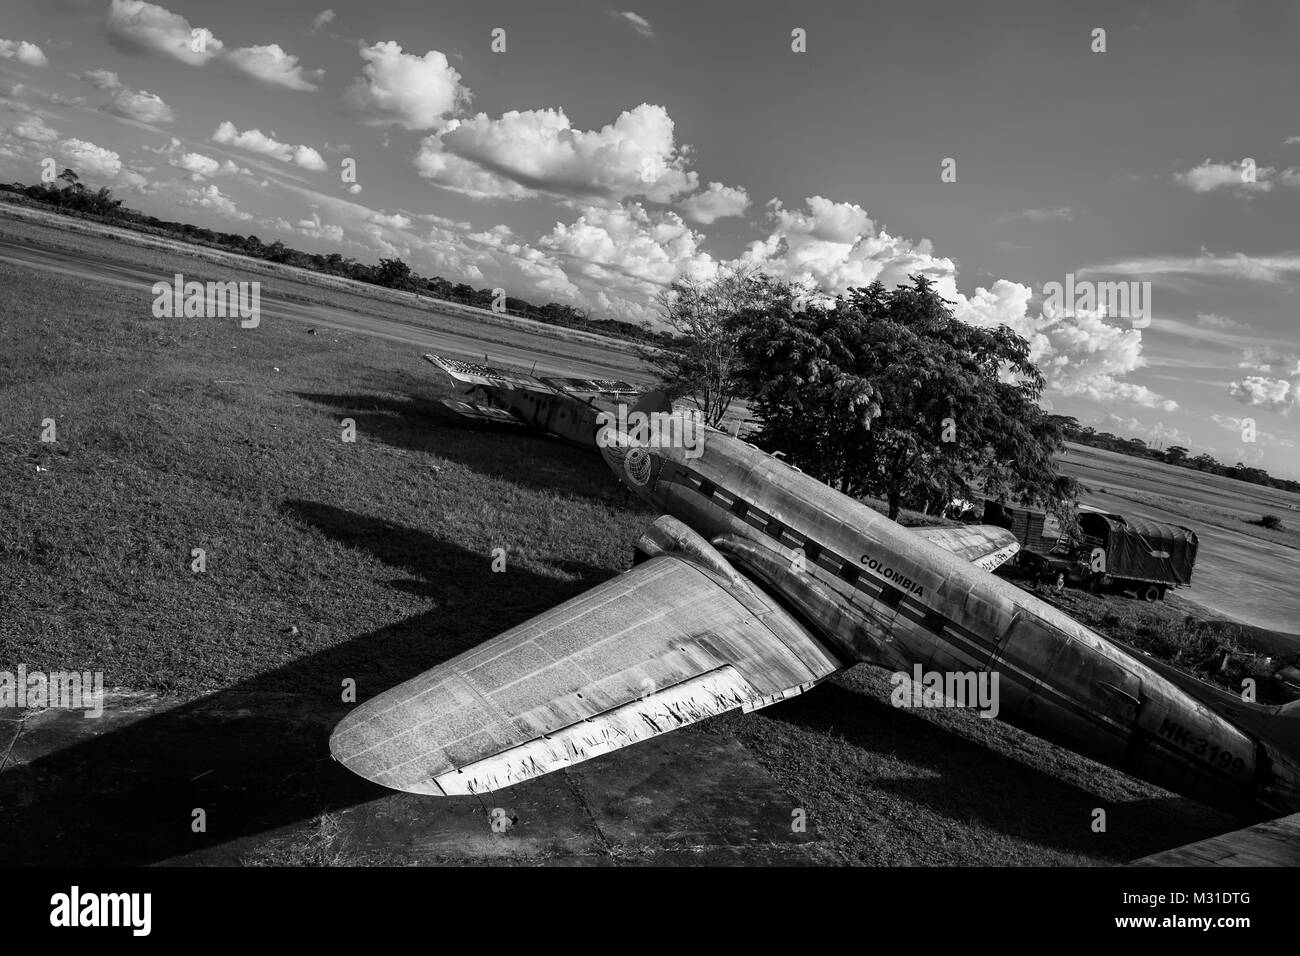 A retired Douglas DC-3 aircraft is seen parked at the airport of Villavicencio, Colombia. - Stock Image